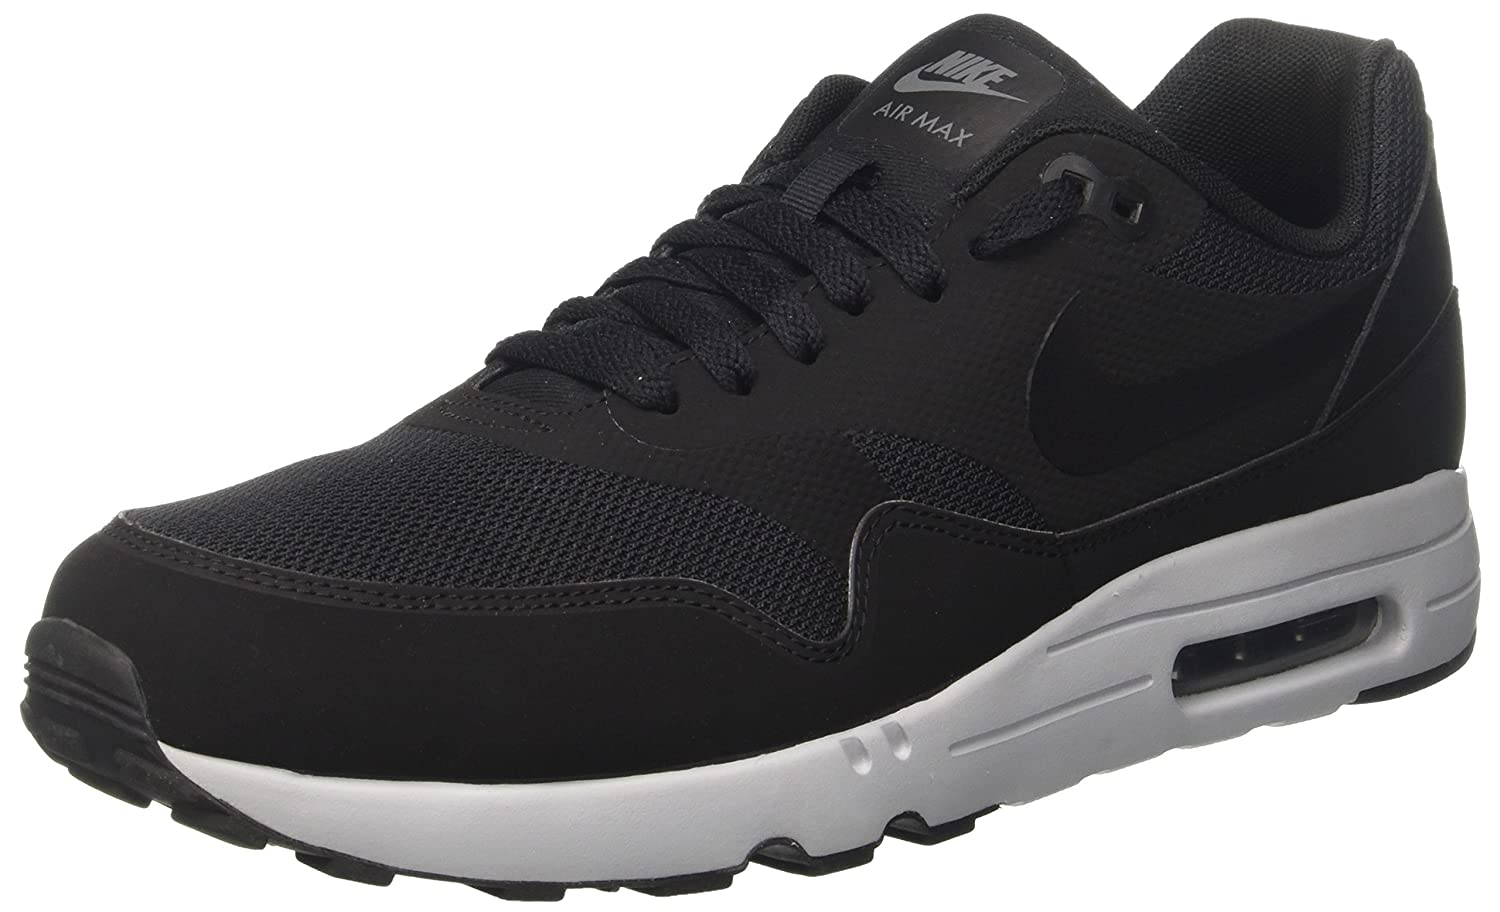 quality design 27e4f 4229f Amazon.com   Nike Men s Air Max 1 Ultra 2.0 Essential Running Shoe    Basketball